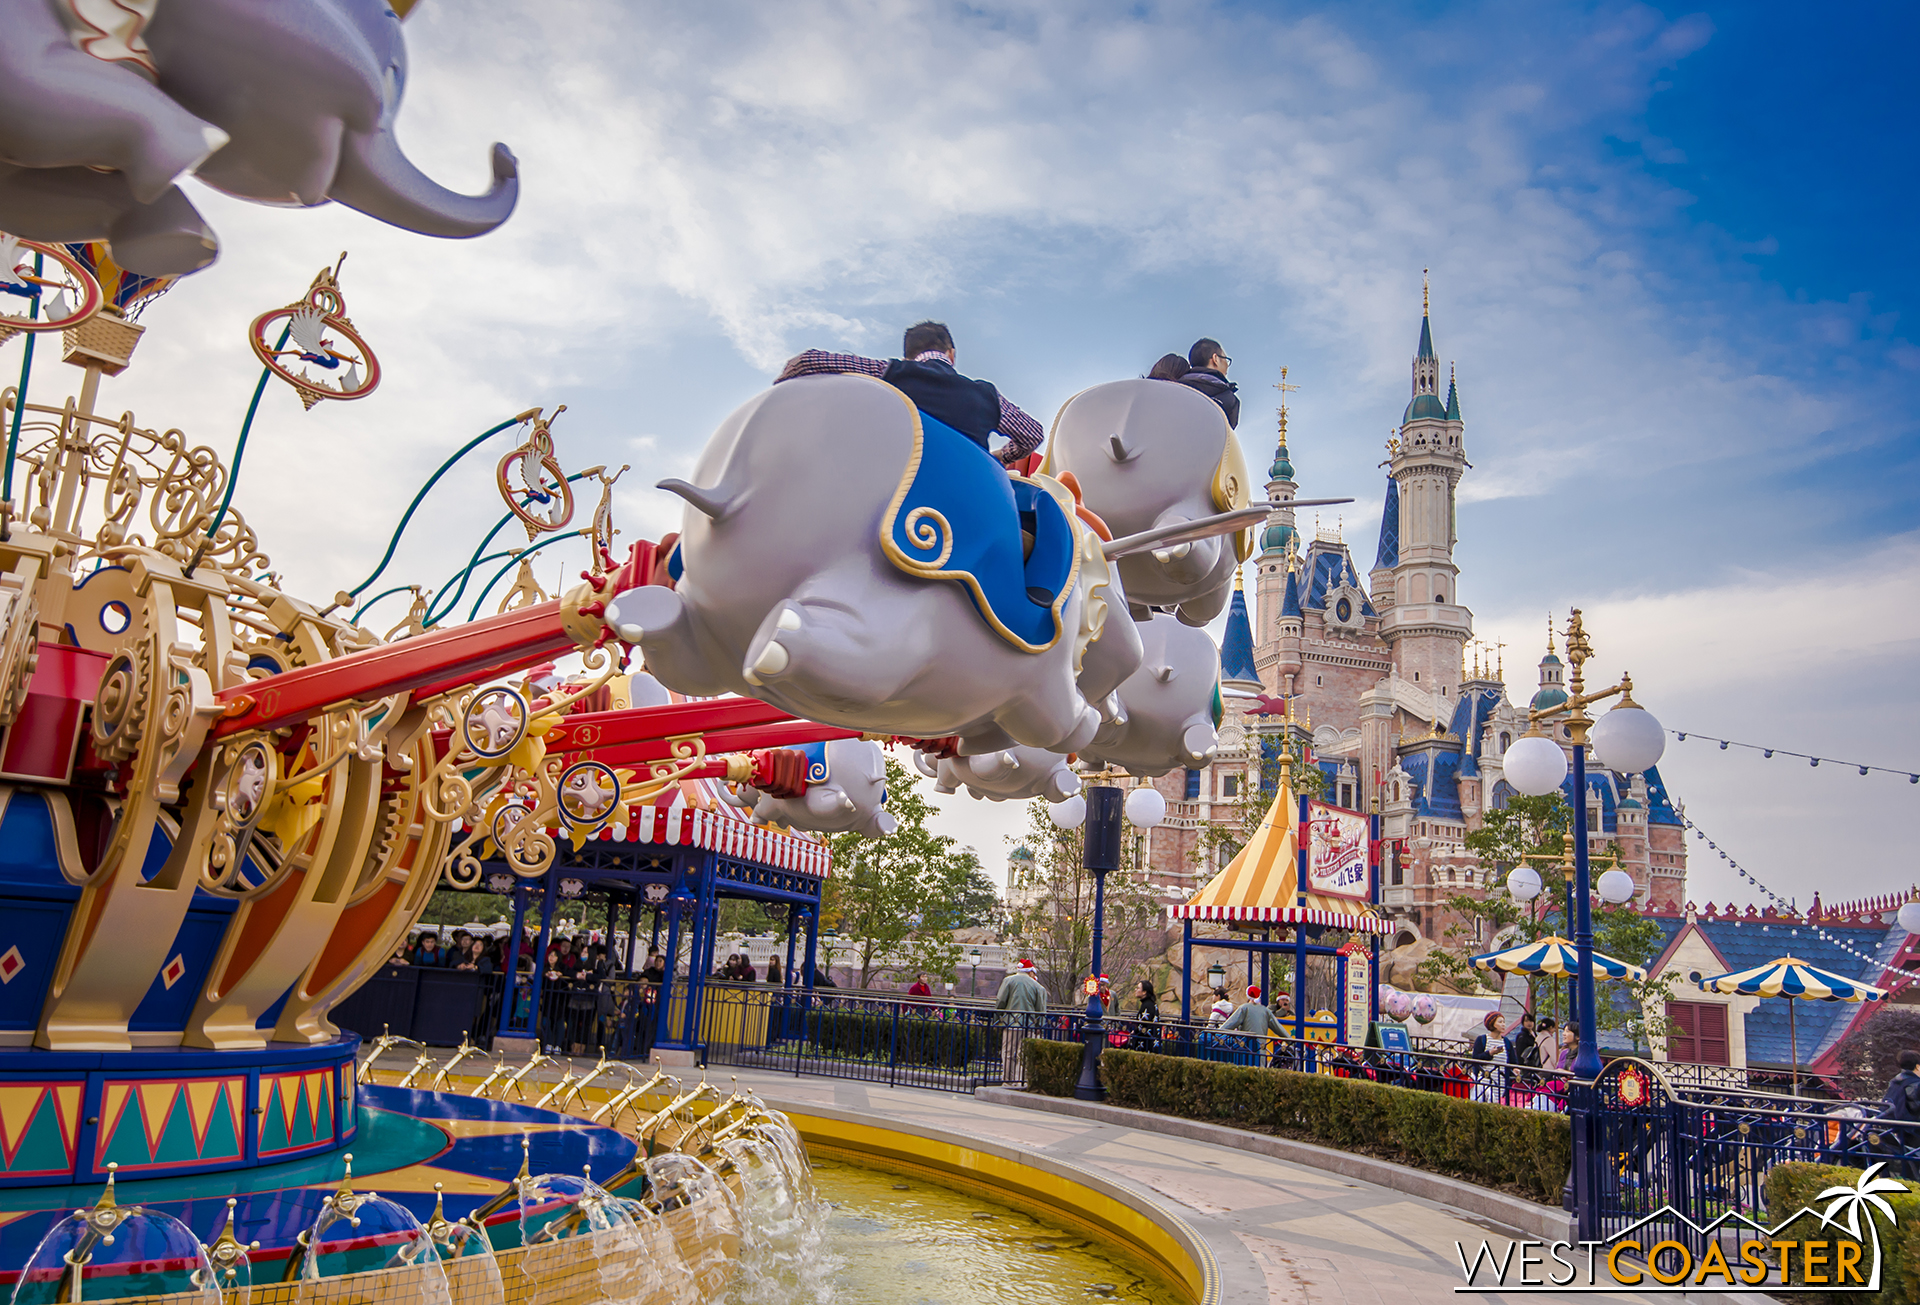 There is a Dumbo Flying Elephant ride in the Gardens of Imagination.